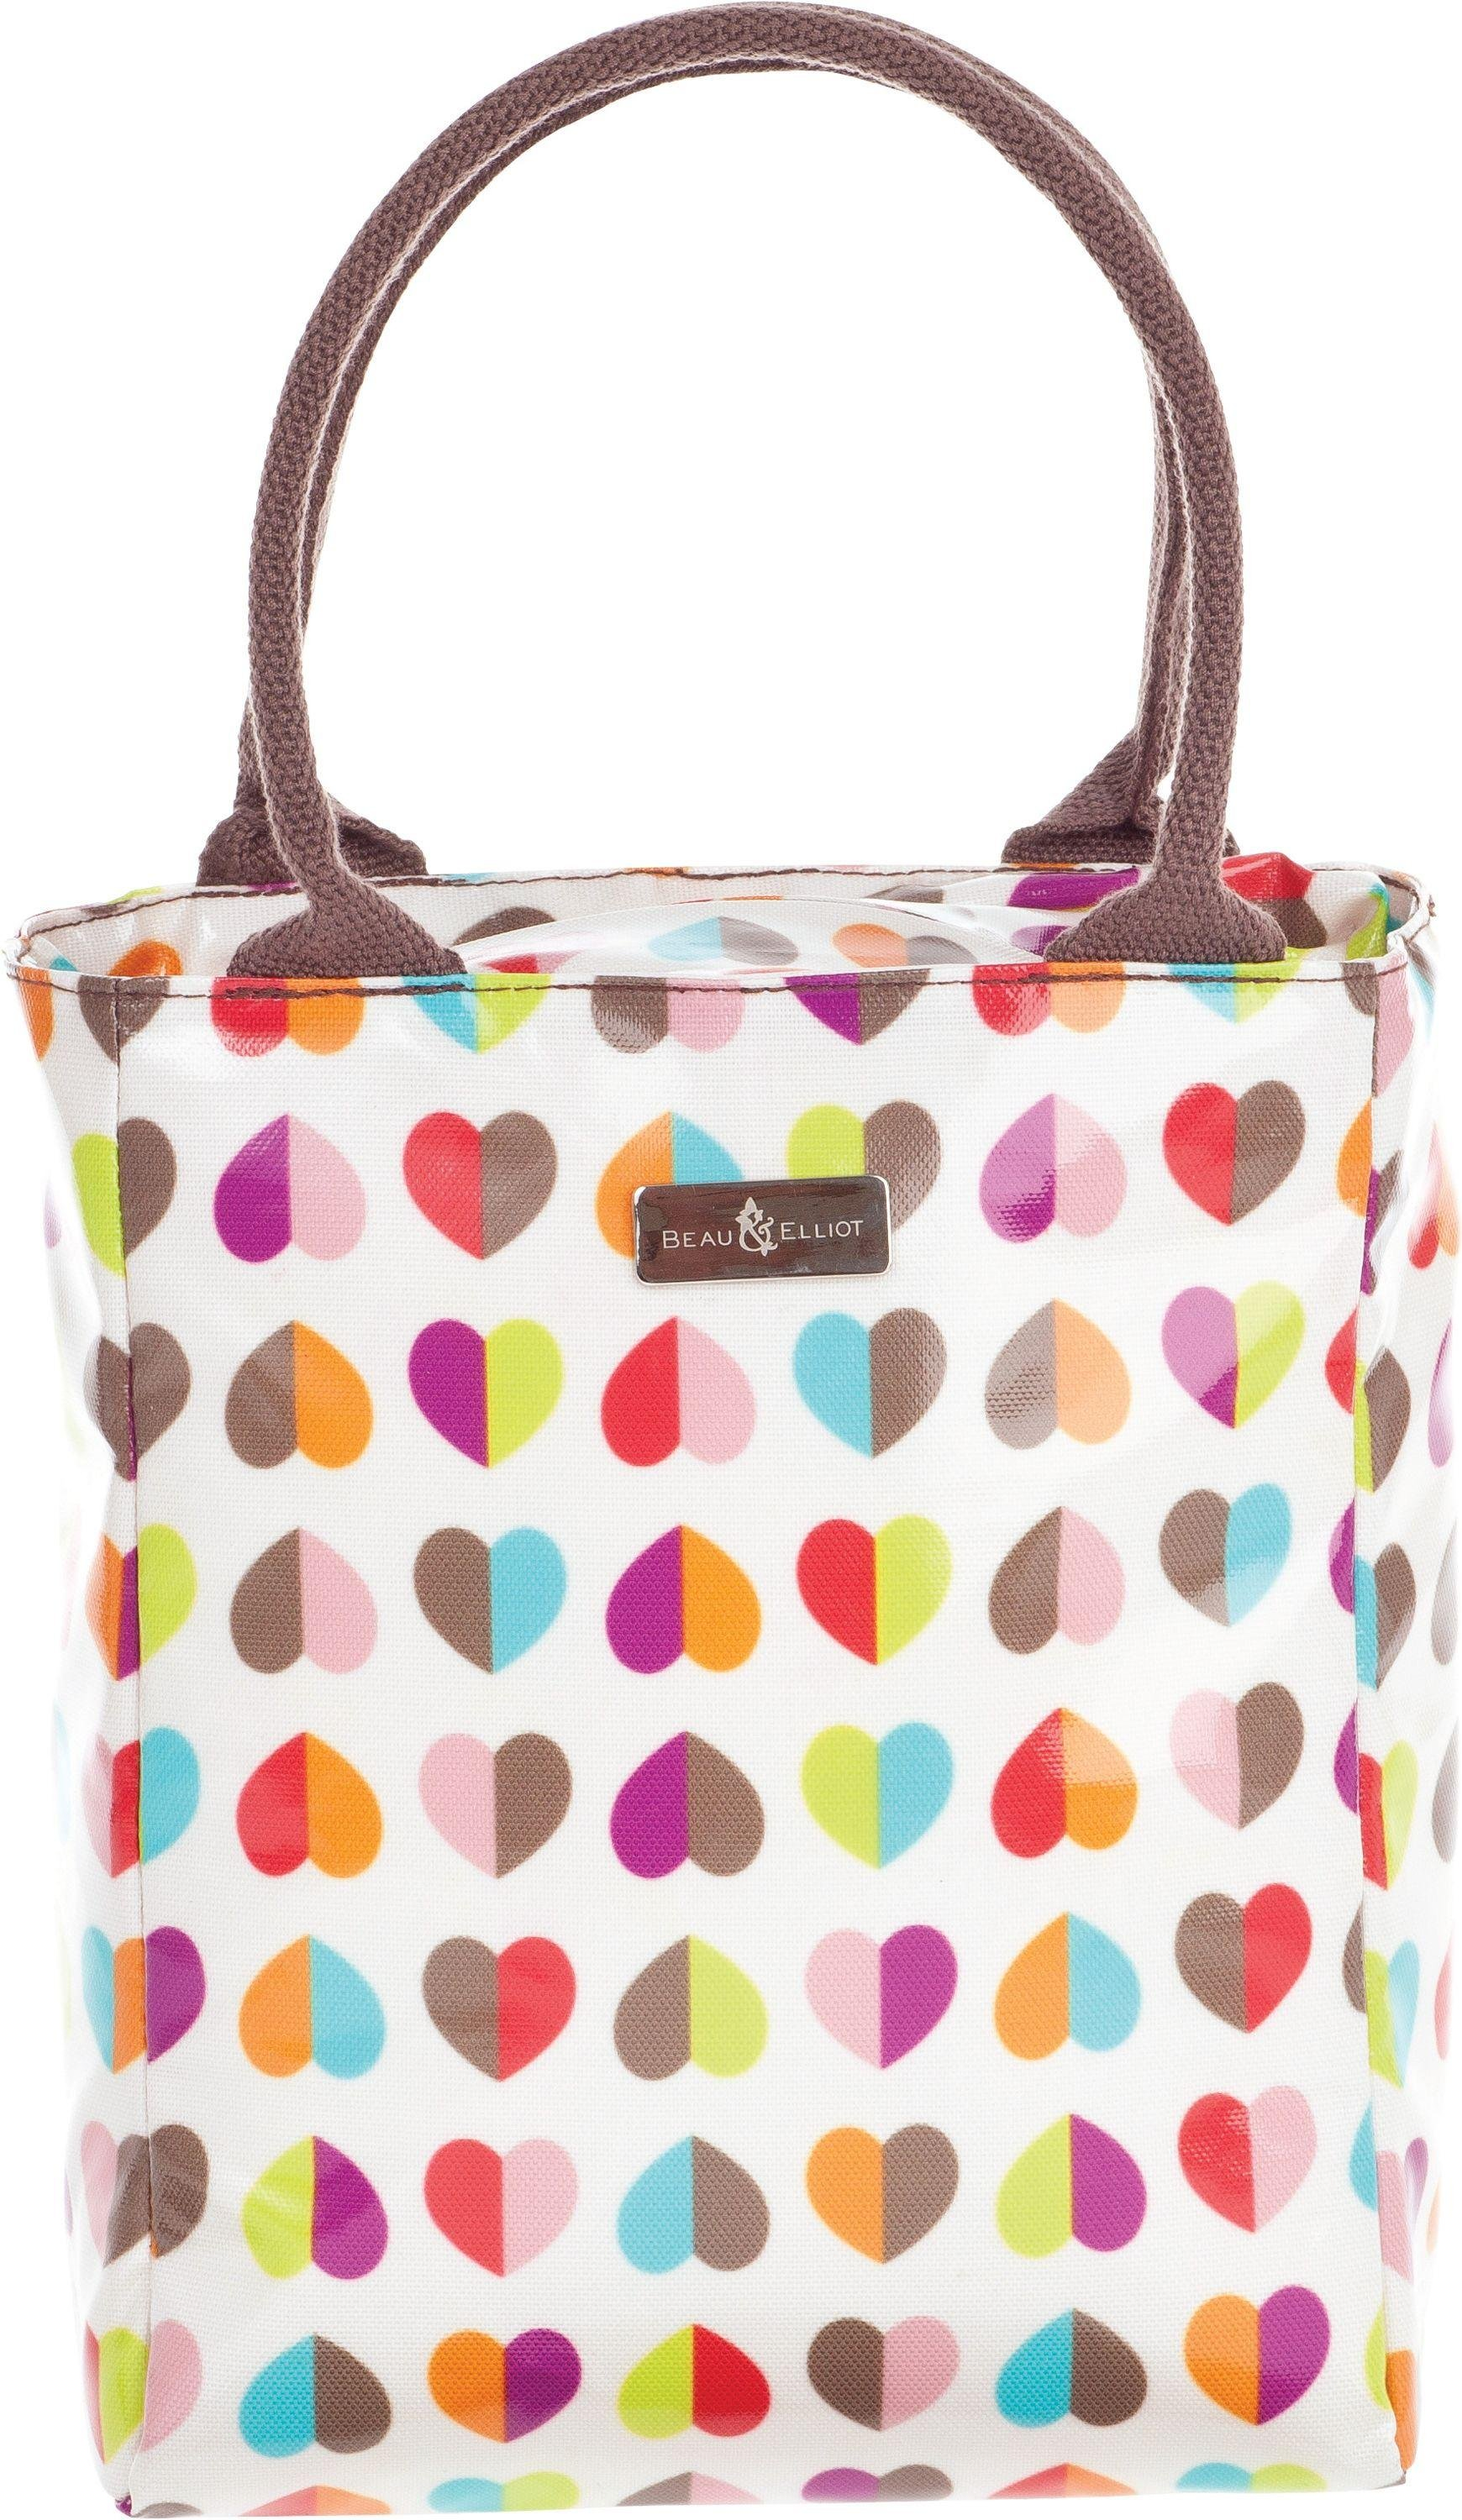 Image of Beau and Elliot - Confetti Insulated Lunch Bag - Multicoloured